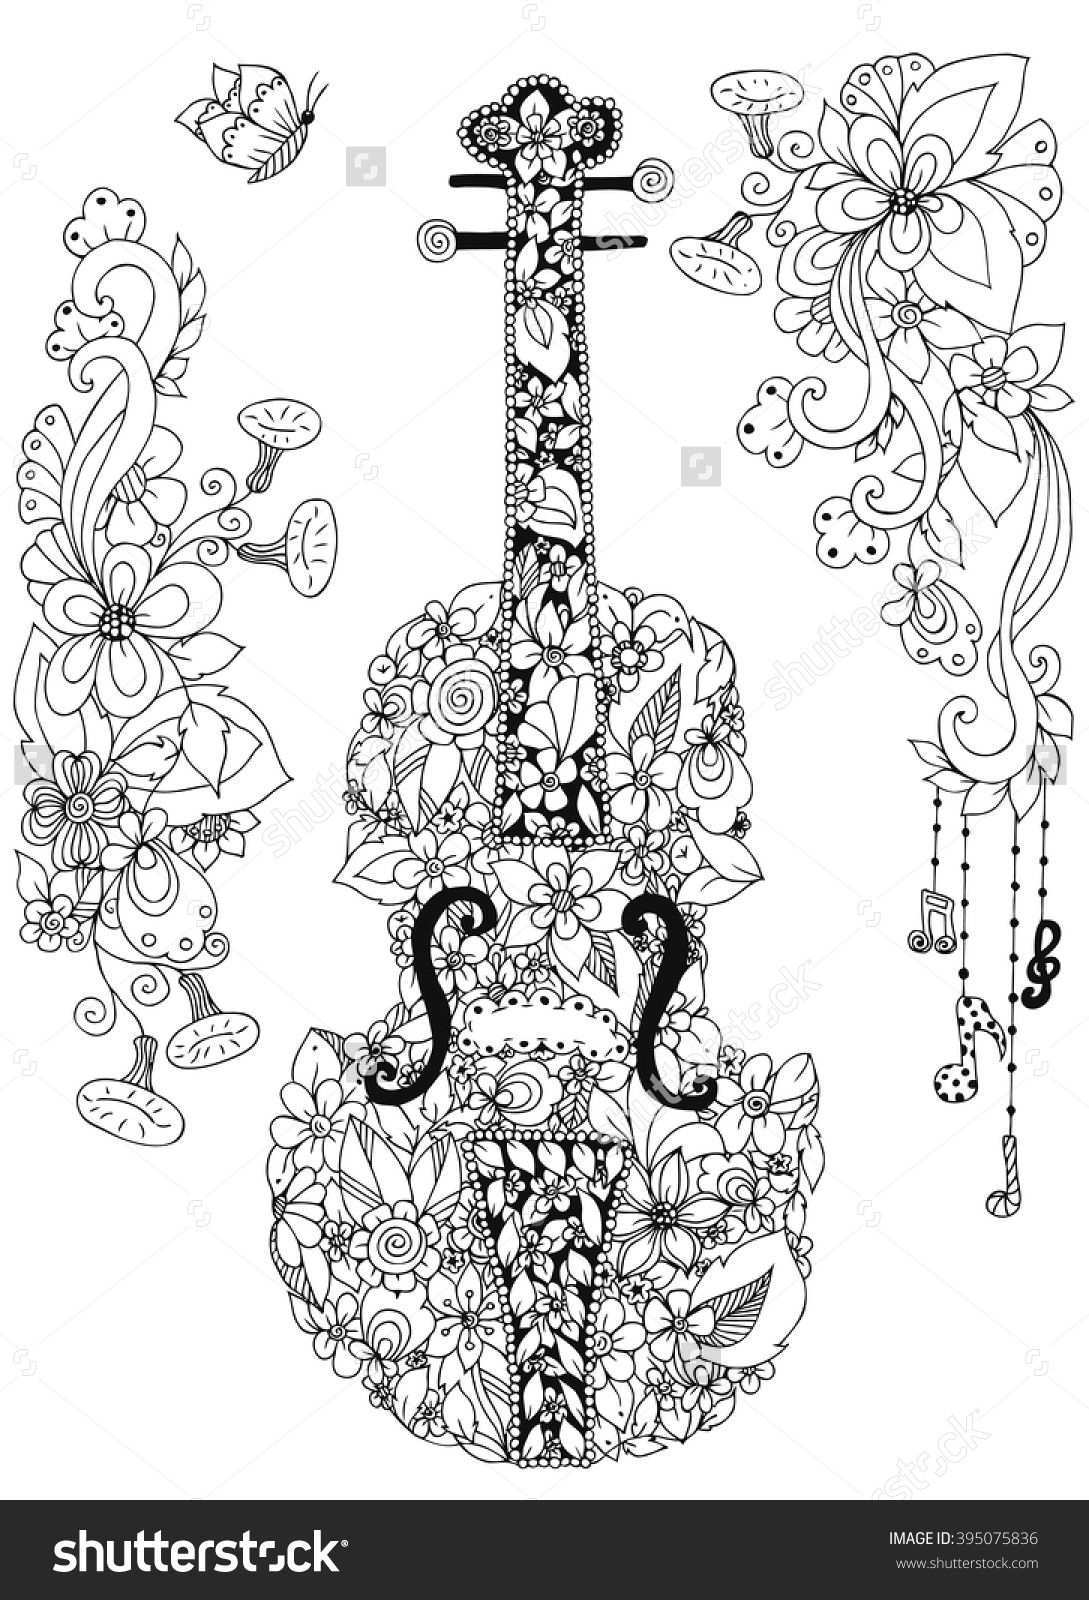 Zentangle violin cello of flowers doodle zenart music for Cello coloring page